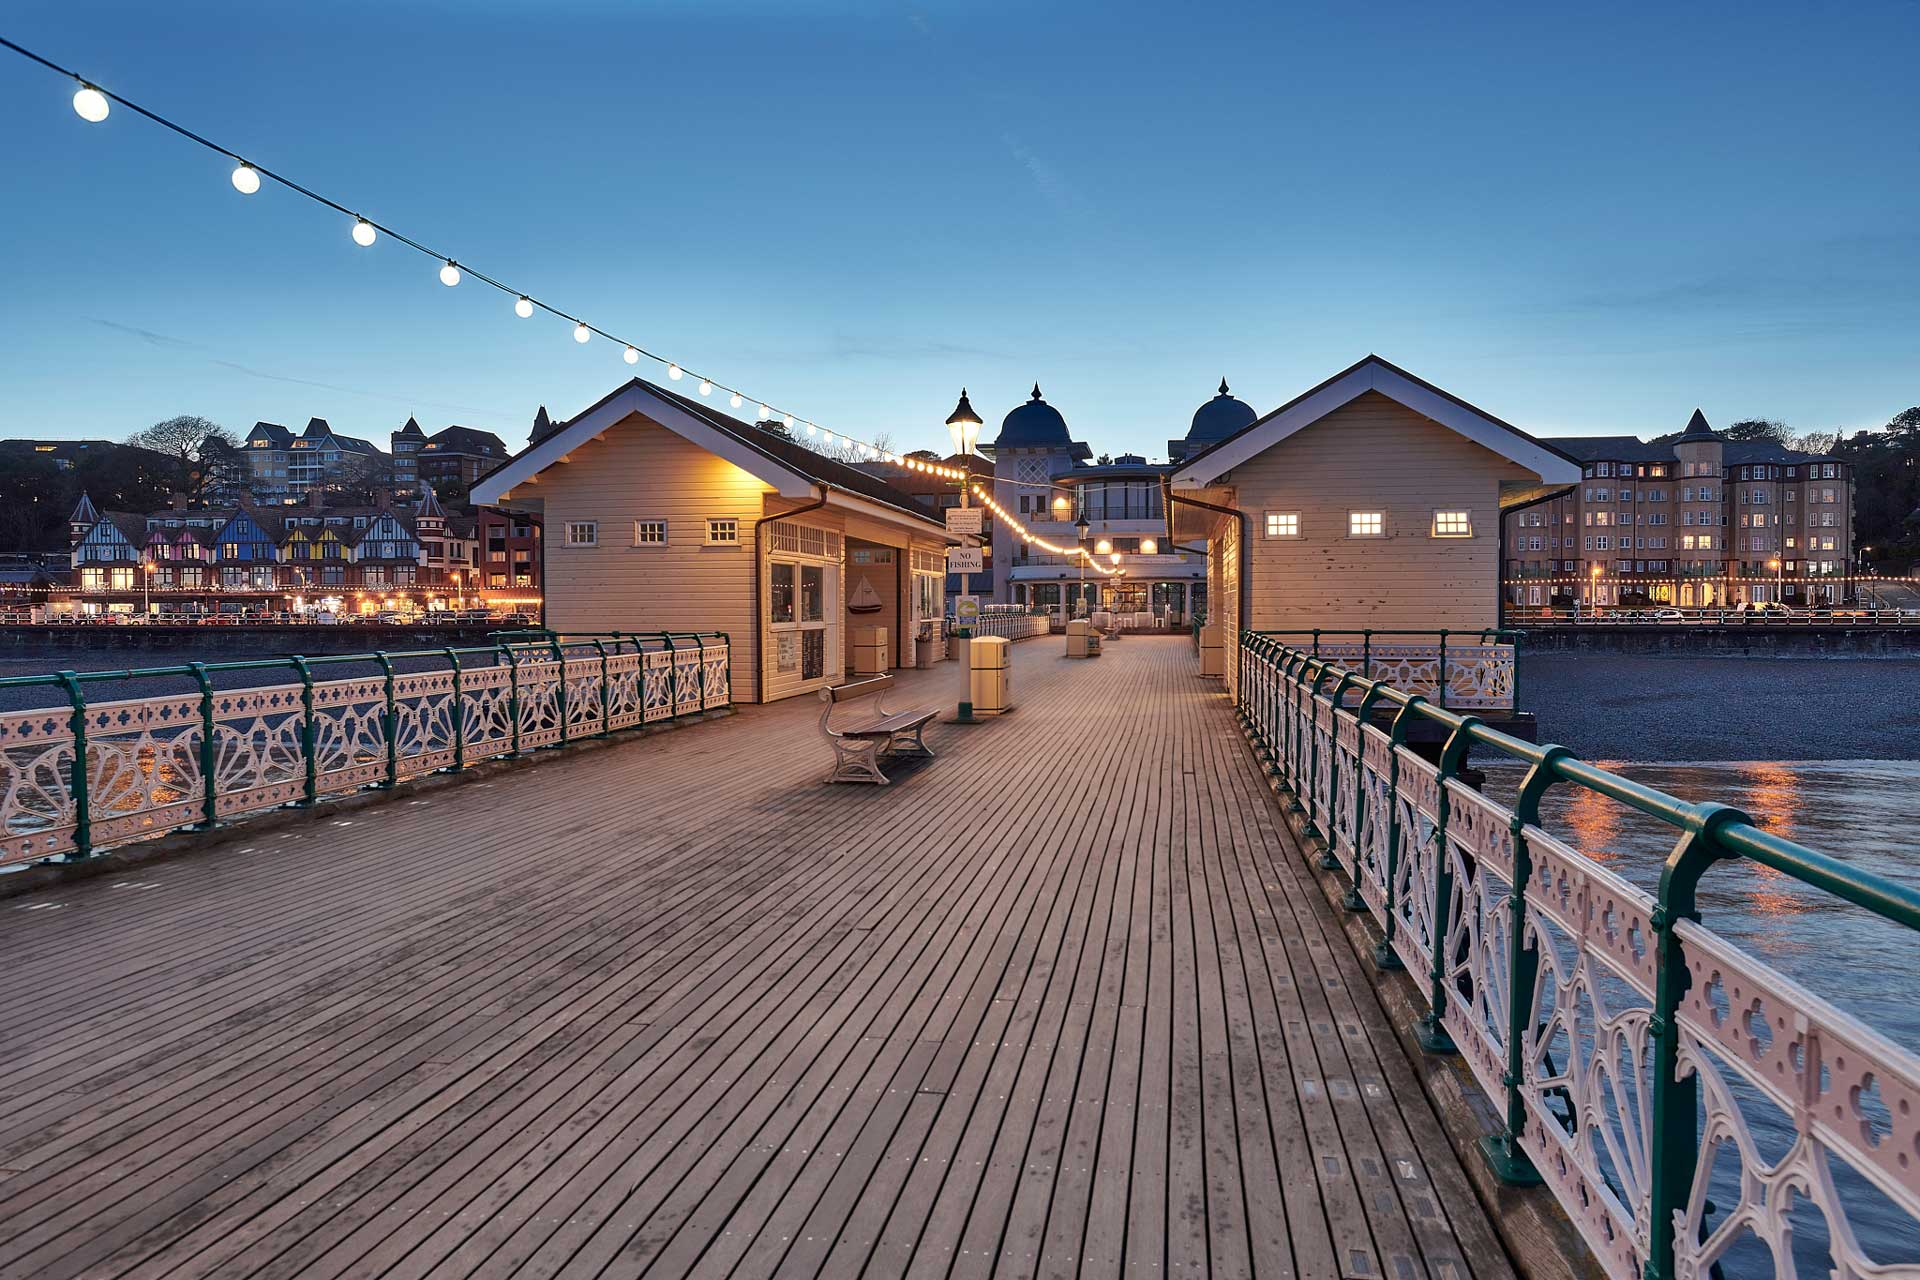 Penarth Pier at night time